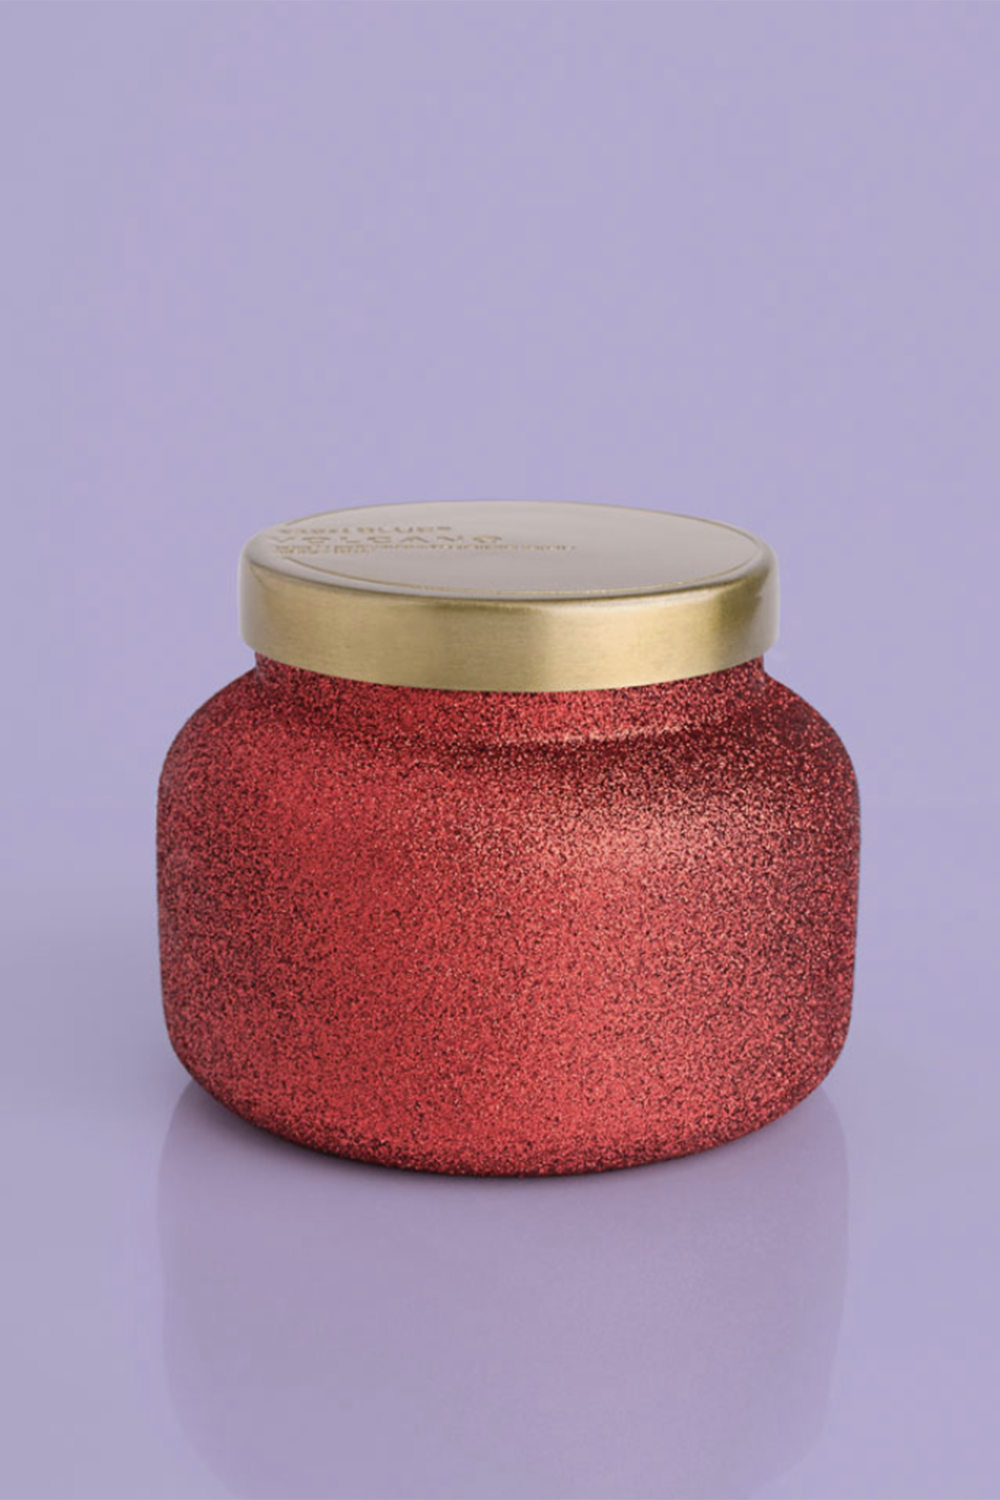 19oz Candle - Volcano Red Glitter